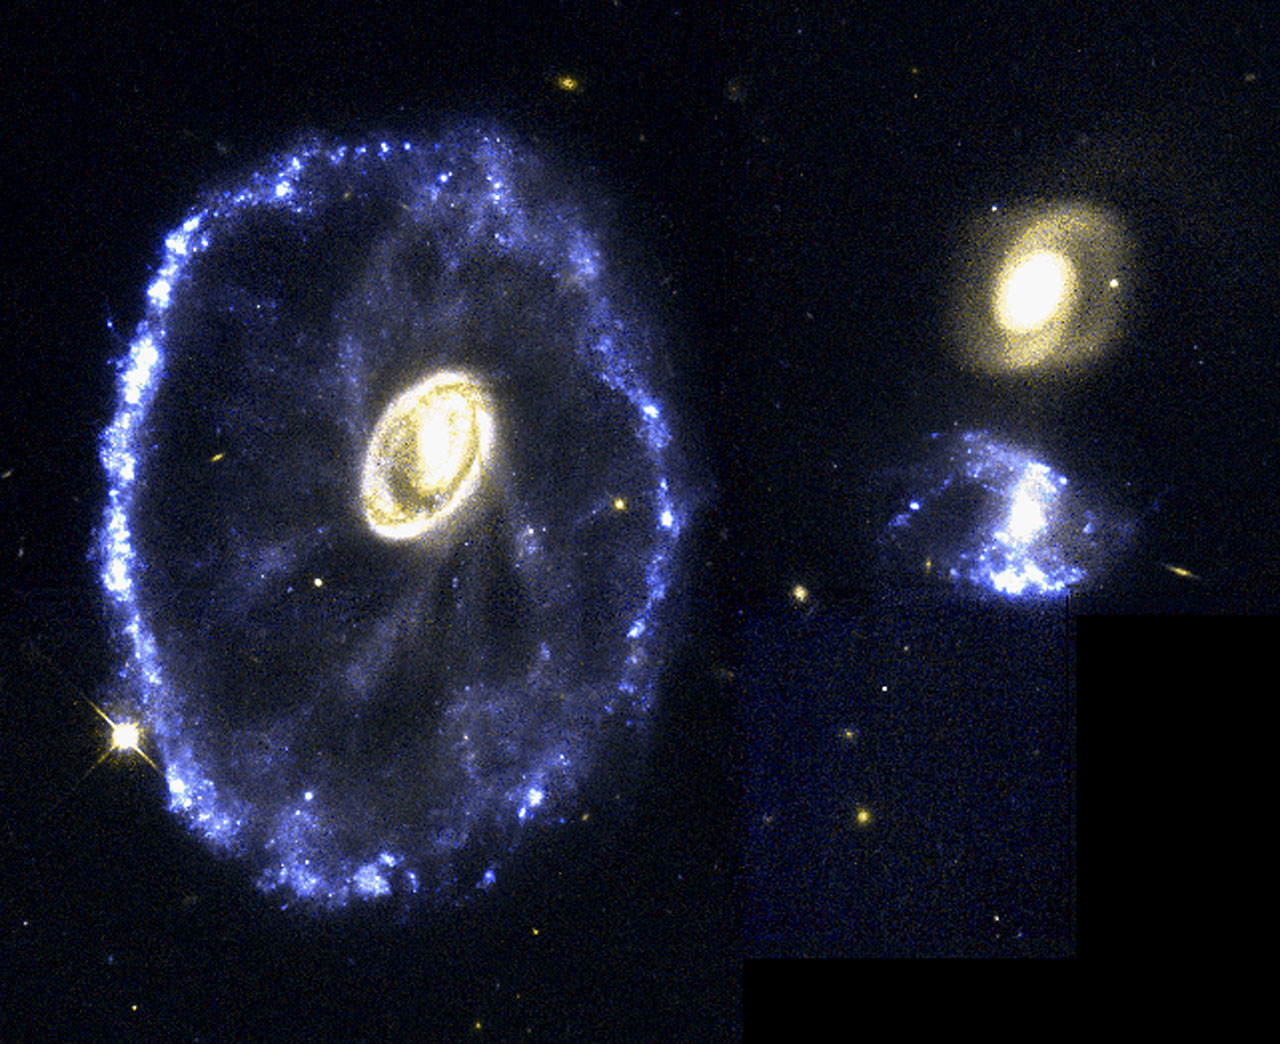 galaxies s and e - photo #17